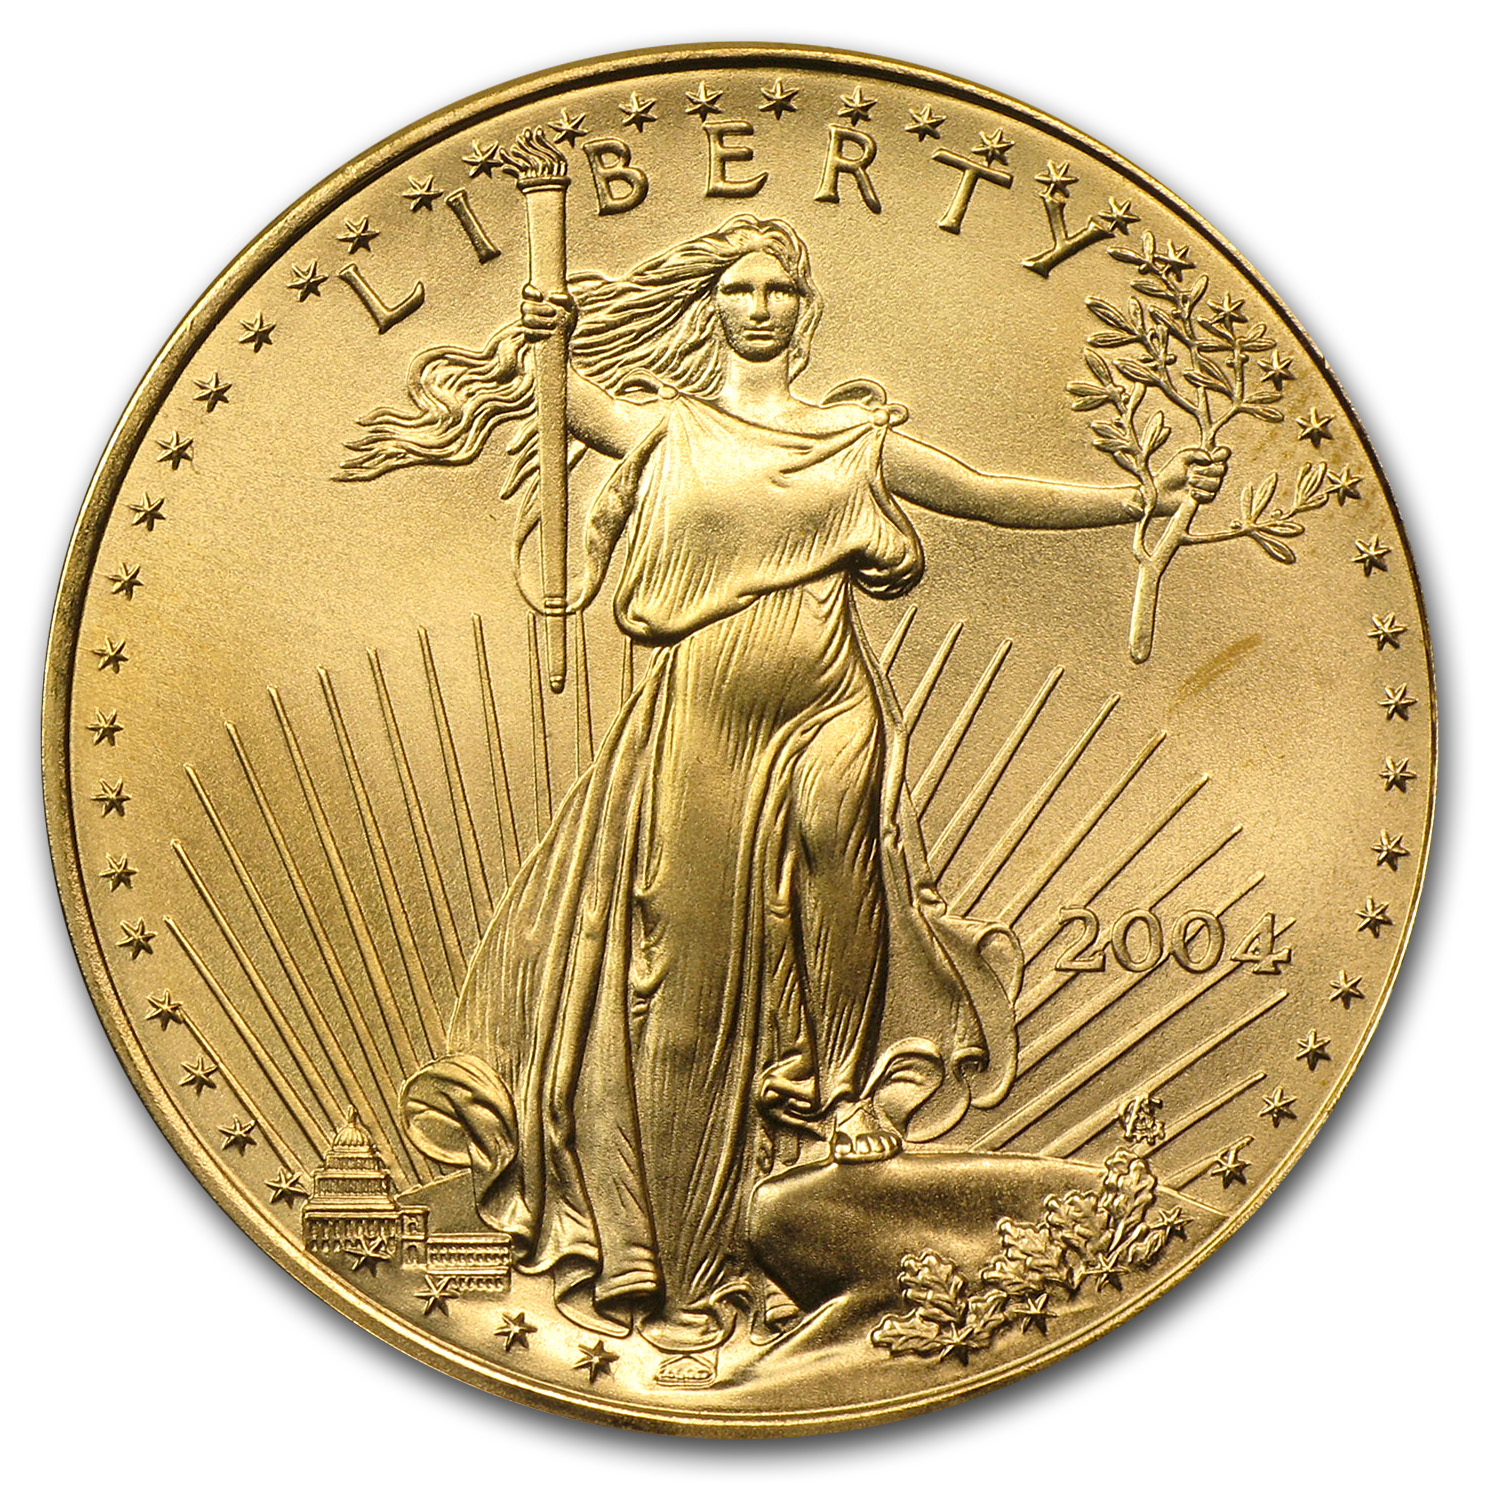 2004 1 oz Gold American Eagle BU